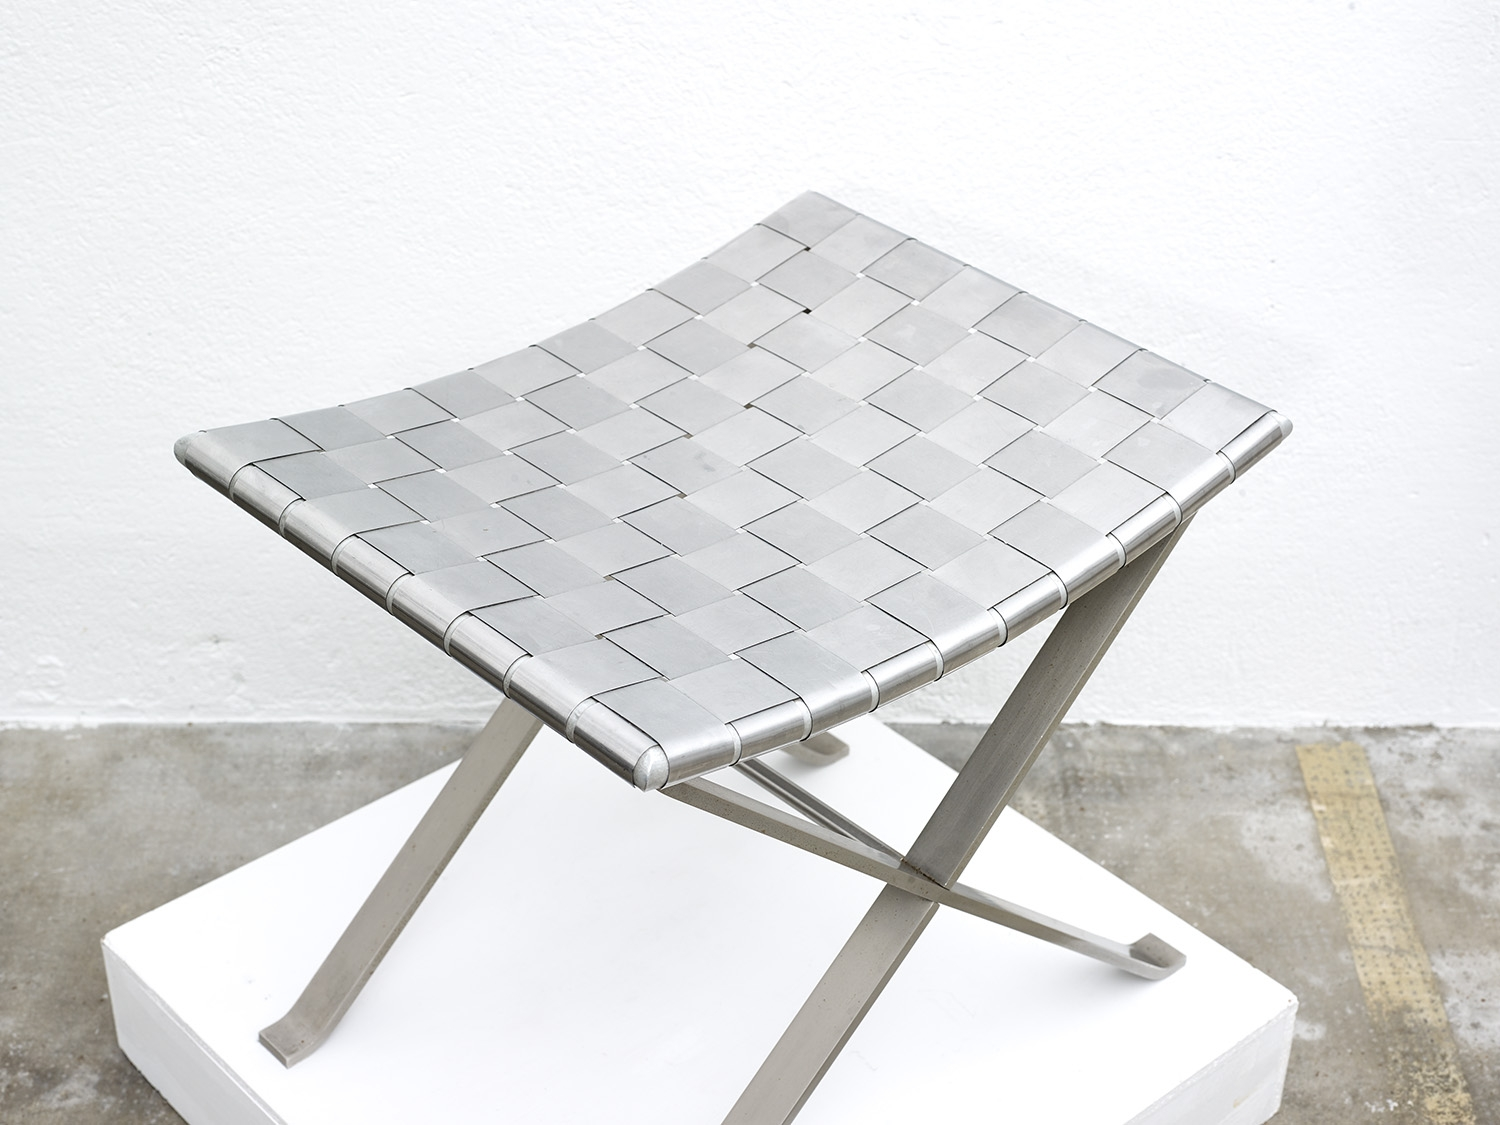 stool-in-stainless-steel-by-michel-pigneres-1970-image-06